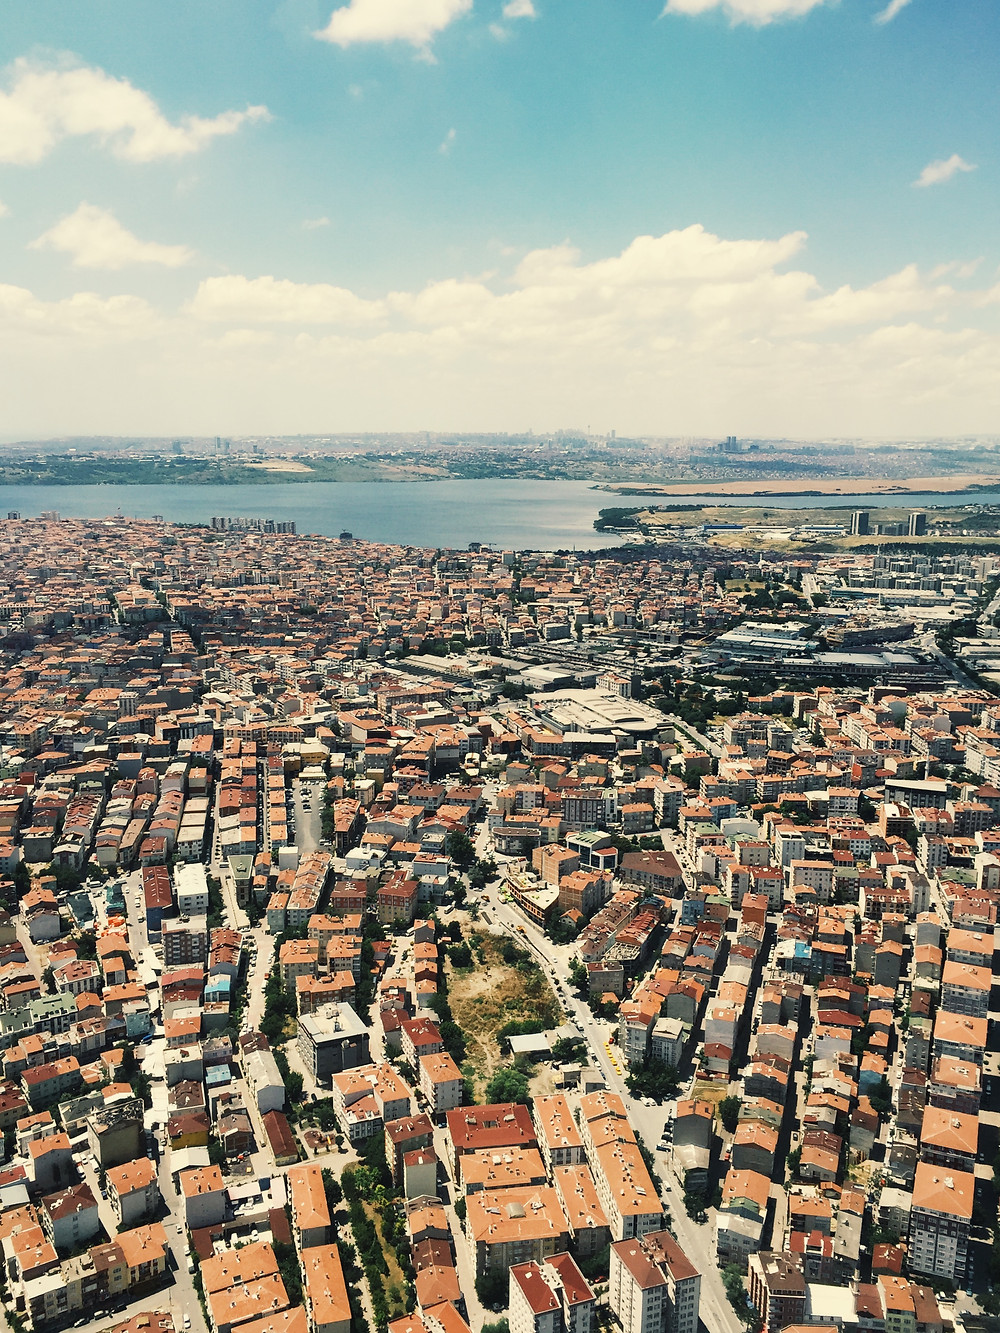 The city of Istanbul